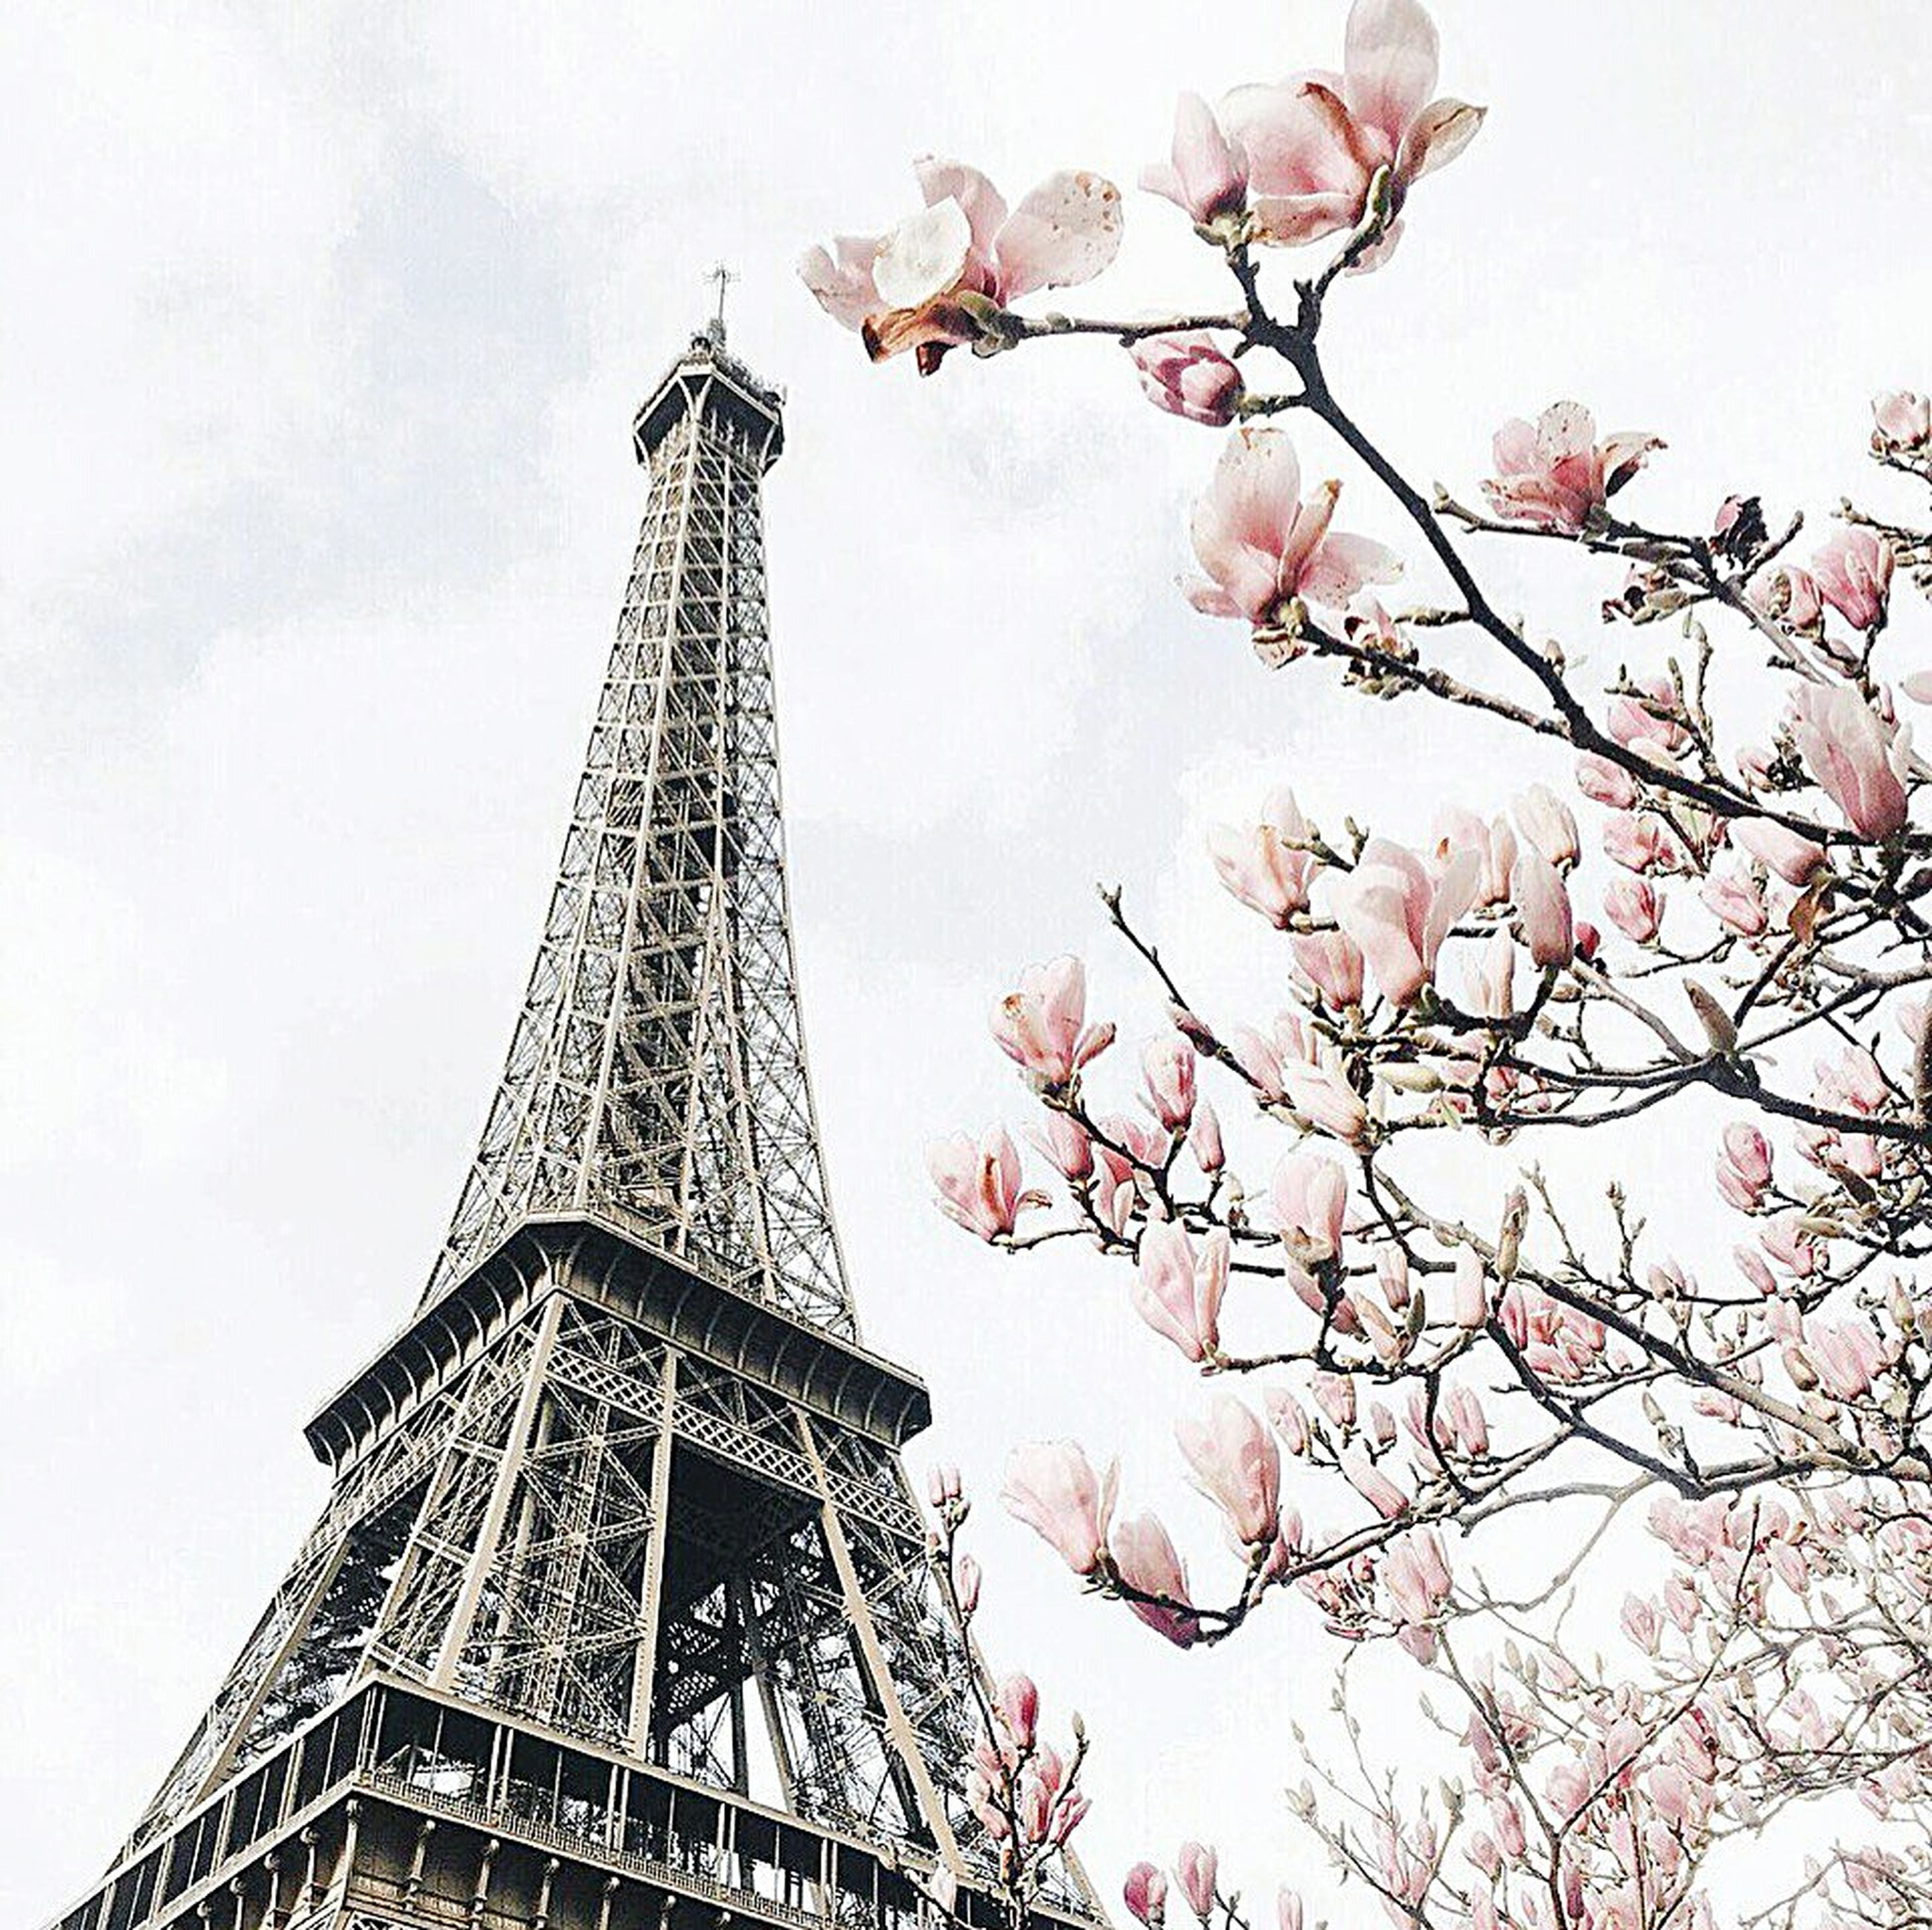 low angle view, architecture, built structure, tower, eiffel tower, tall - high, famous place, international landmark, travel destinations, tree, building exterior, tourism, capital cities, sky, culture, travel, history, city, branch, architectural feature